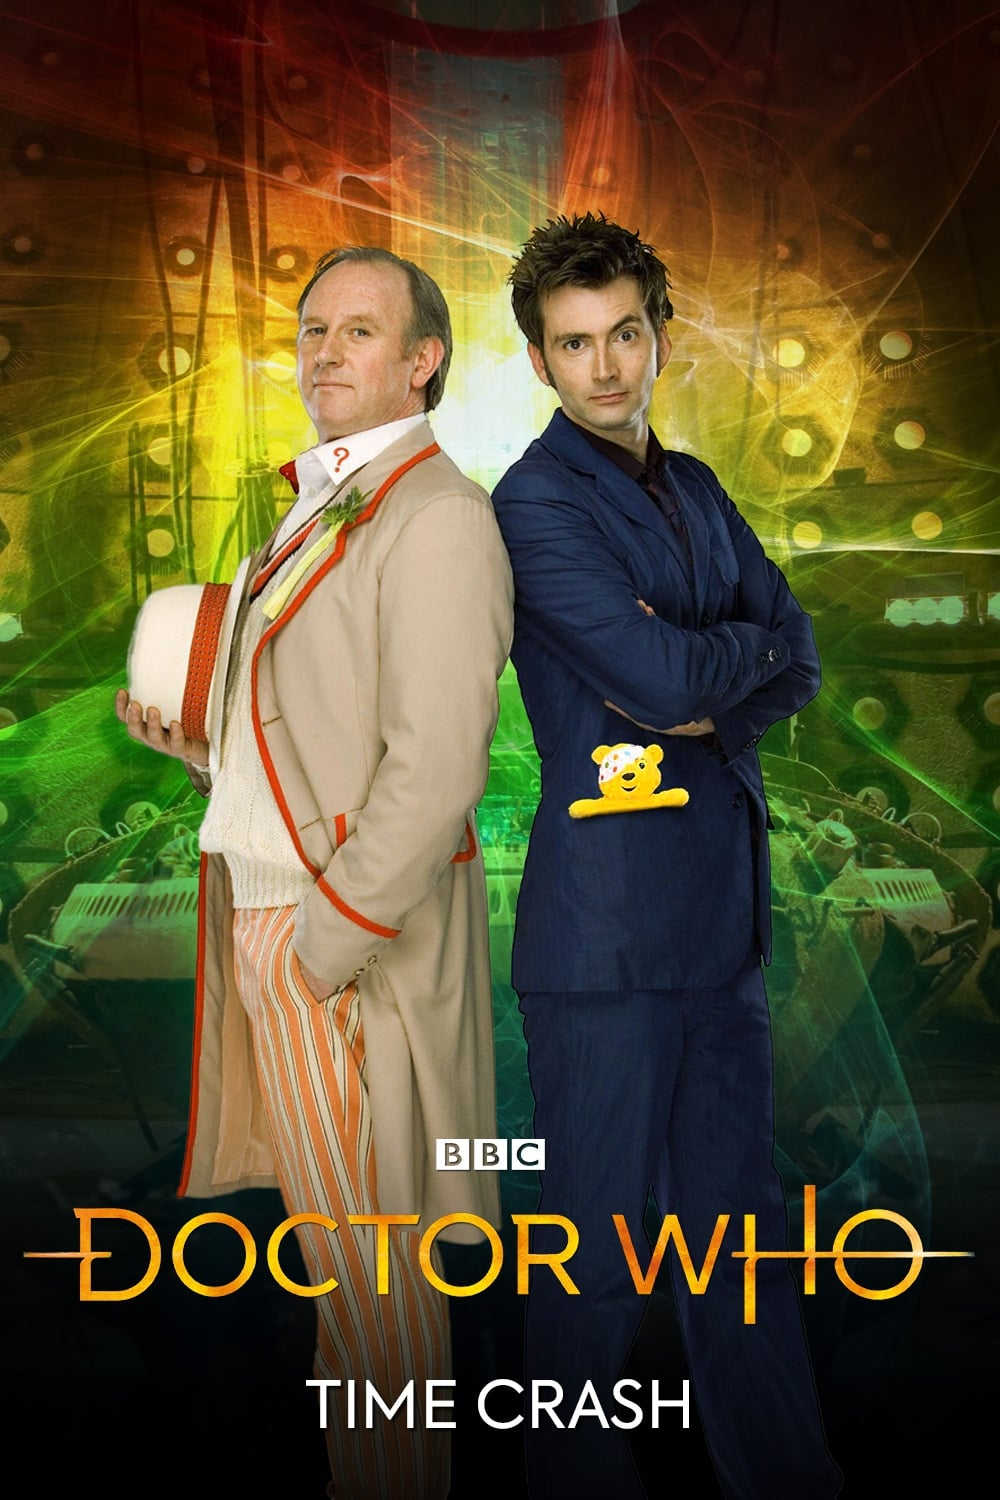 Doctor Who: Time Crash (2007)